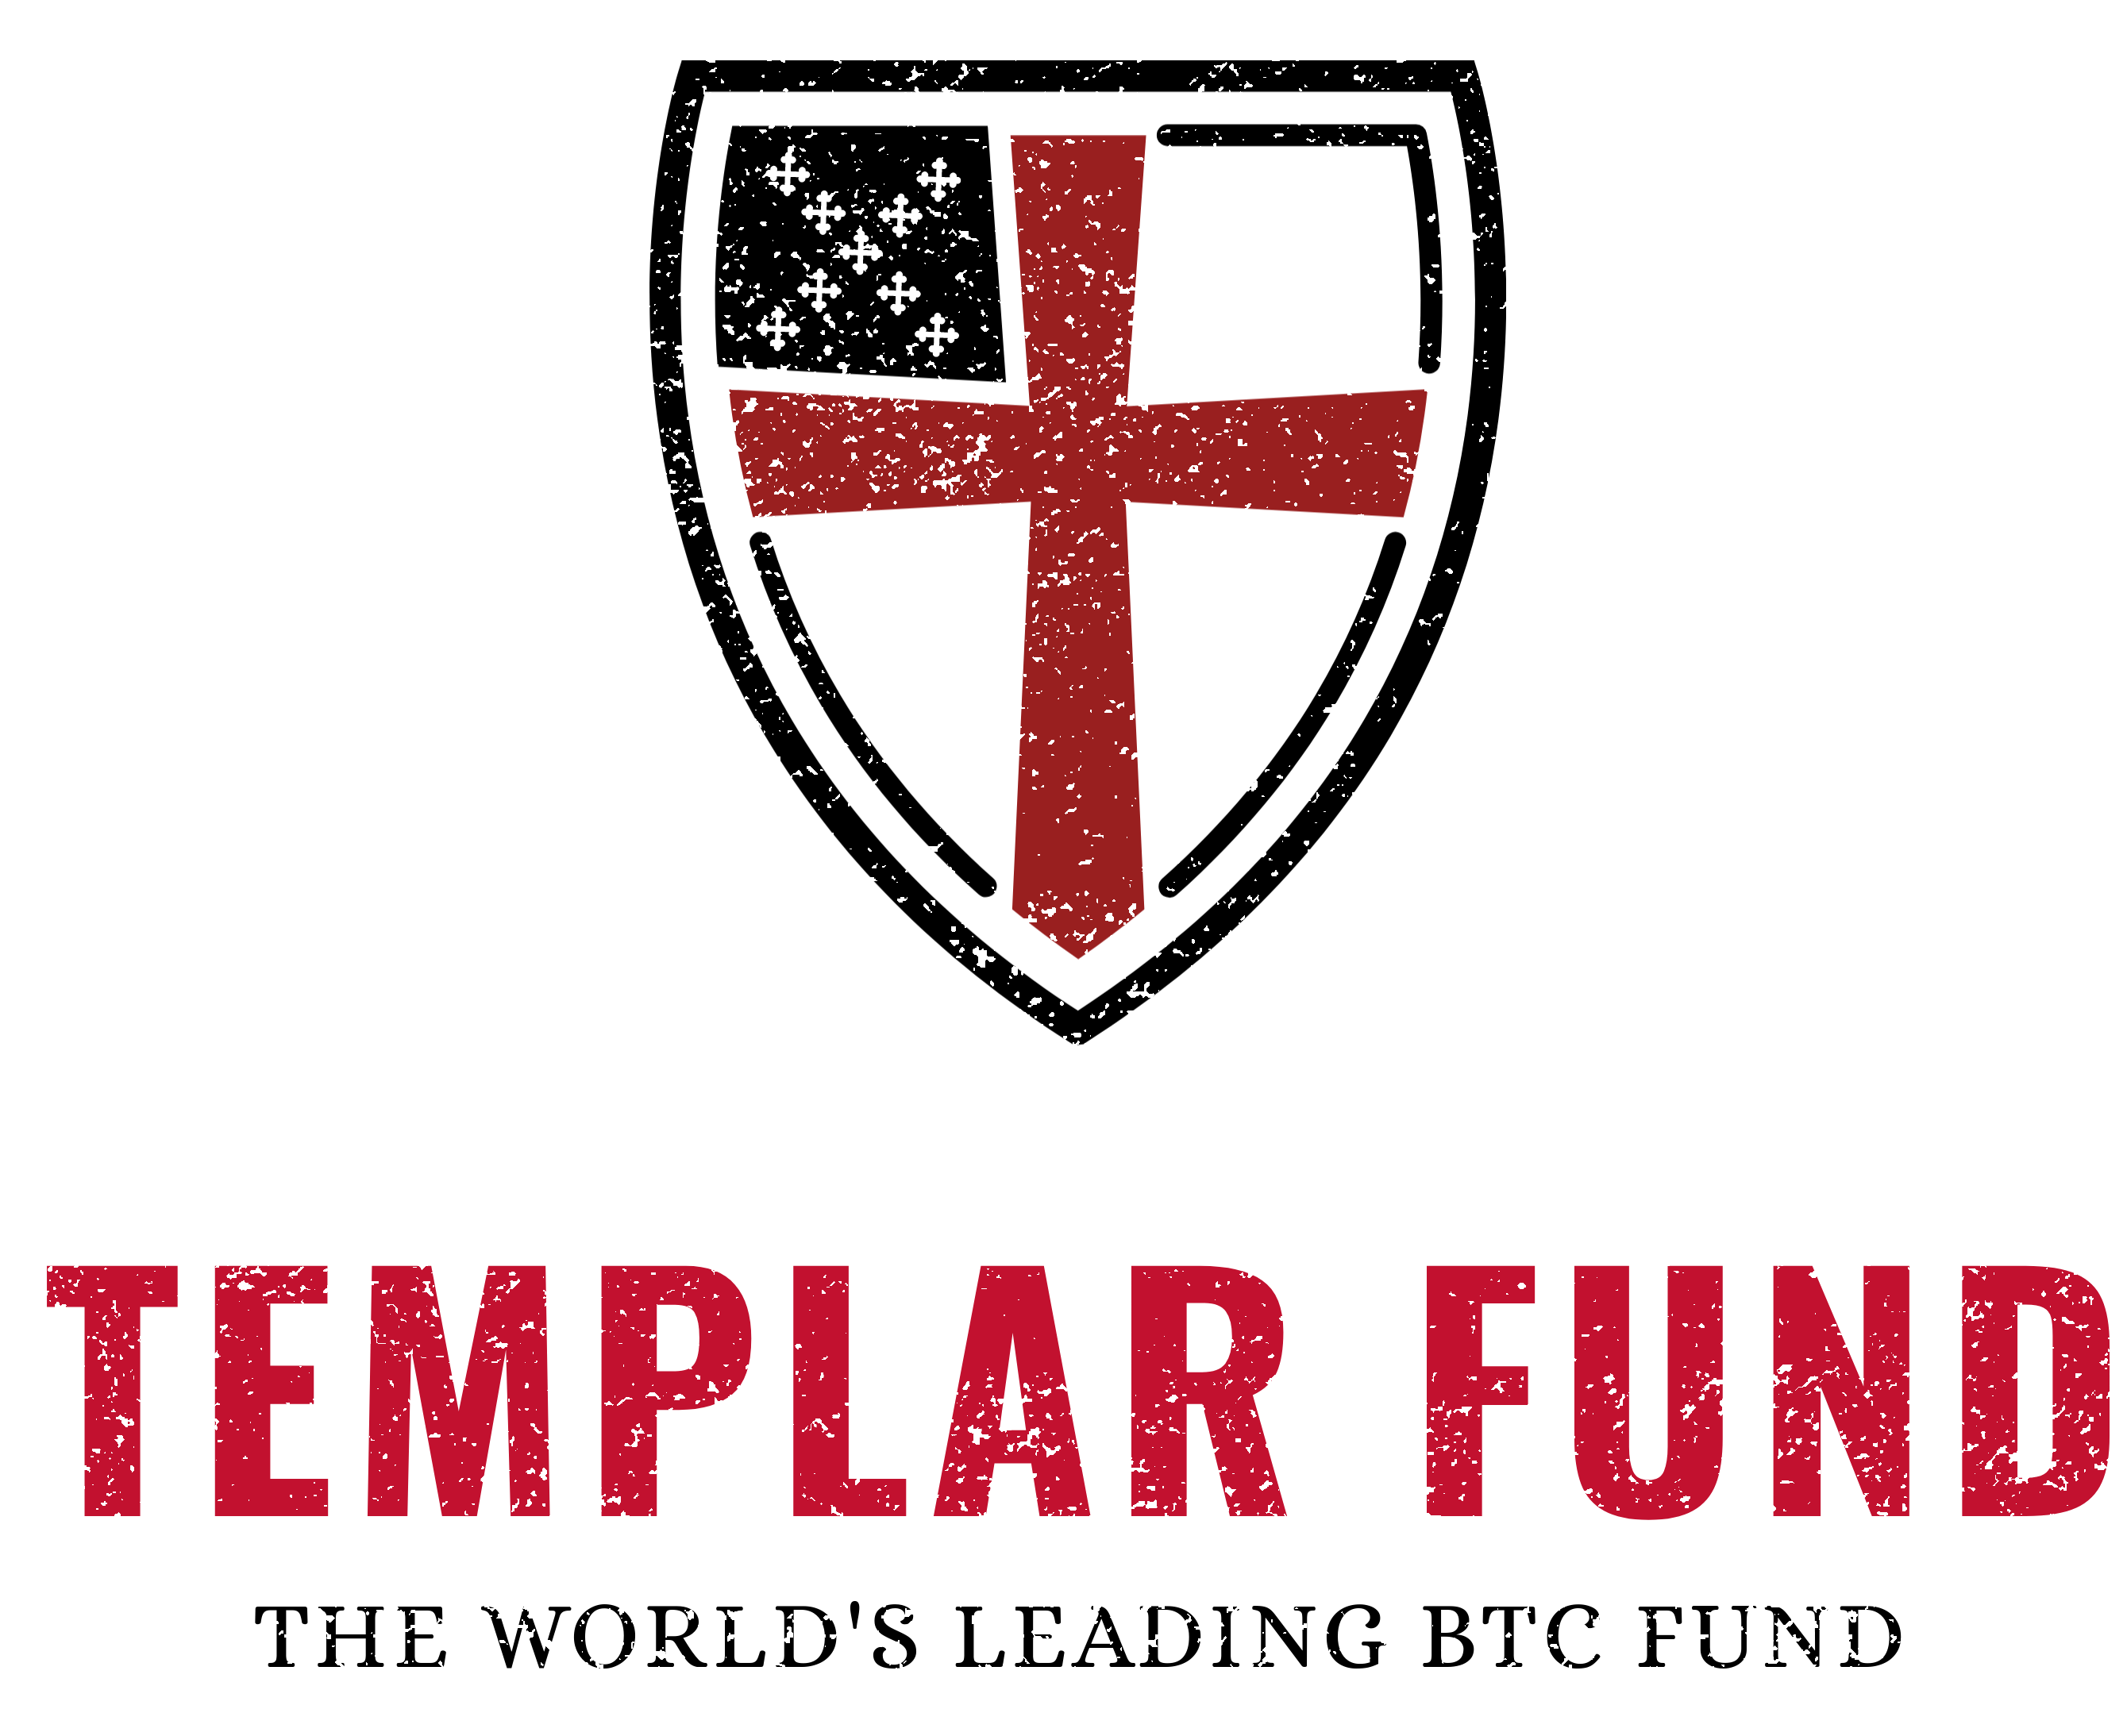 Templar Fund Earns 0.932% in Previous 10 Day Trade Period